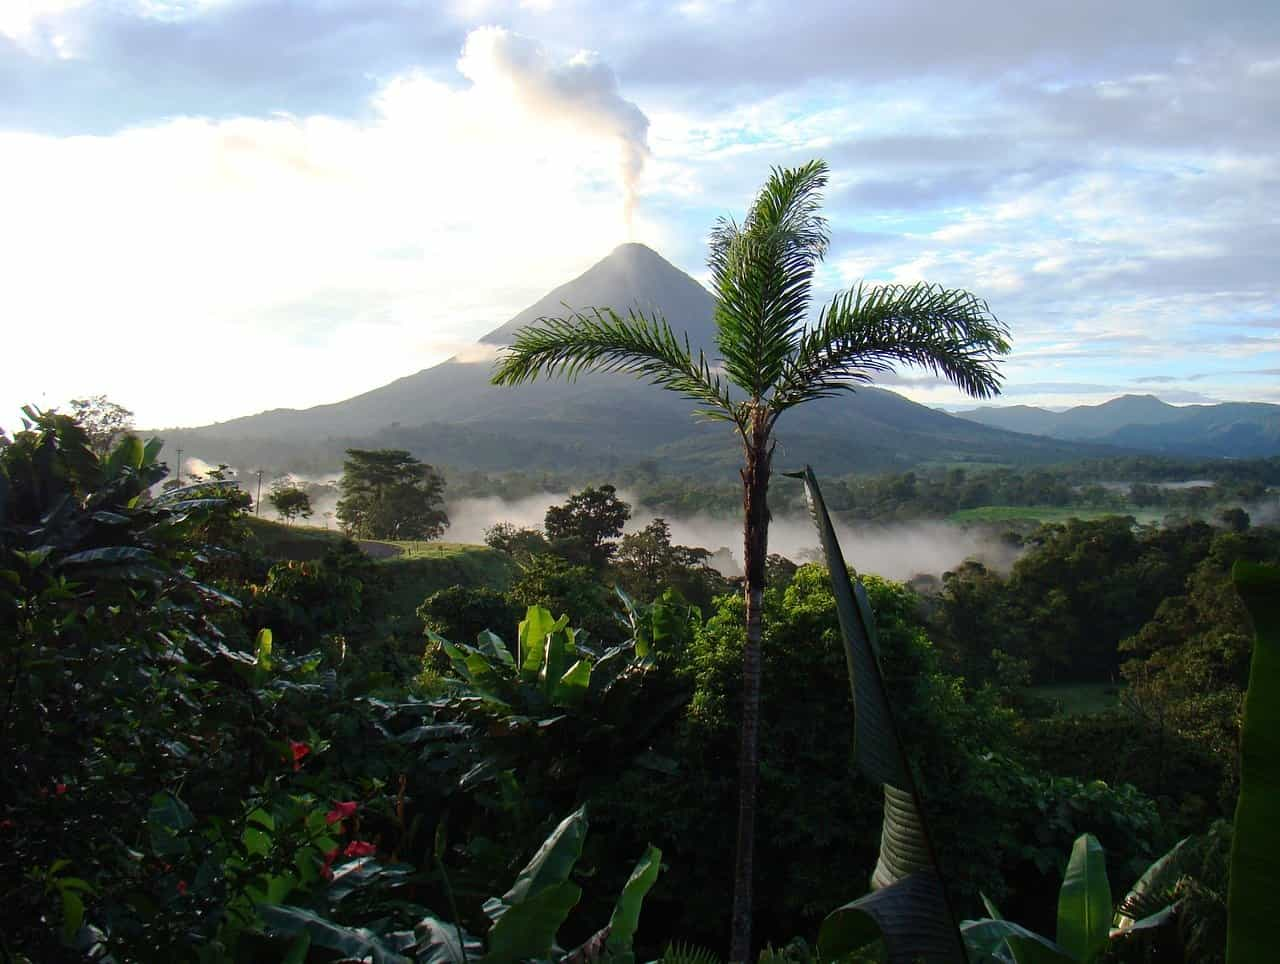 The view of the lush Costa Rican jungle with a volcano in the background.